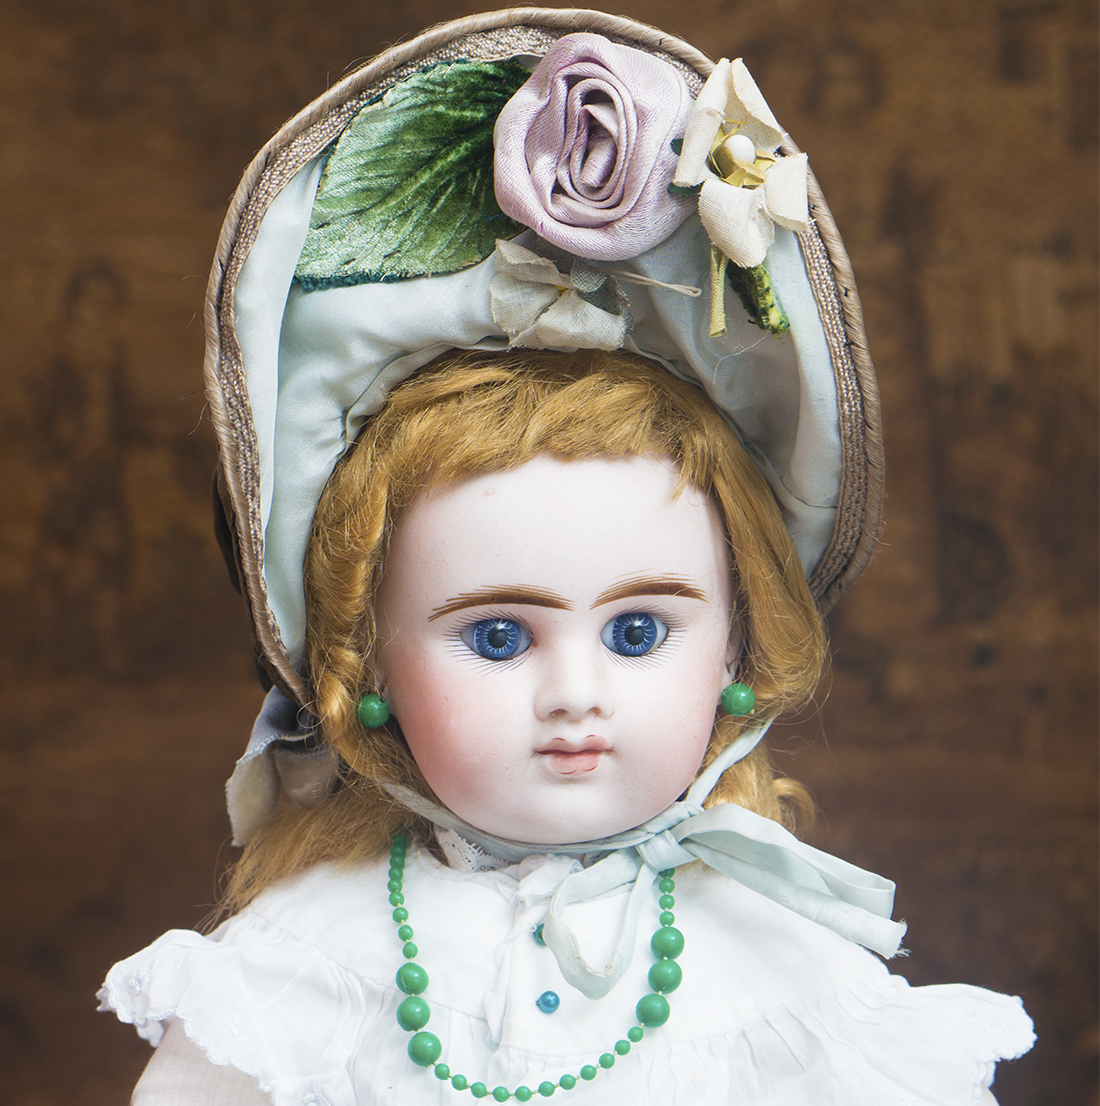 Denamur closed mouth doll